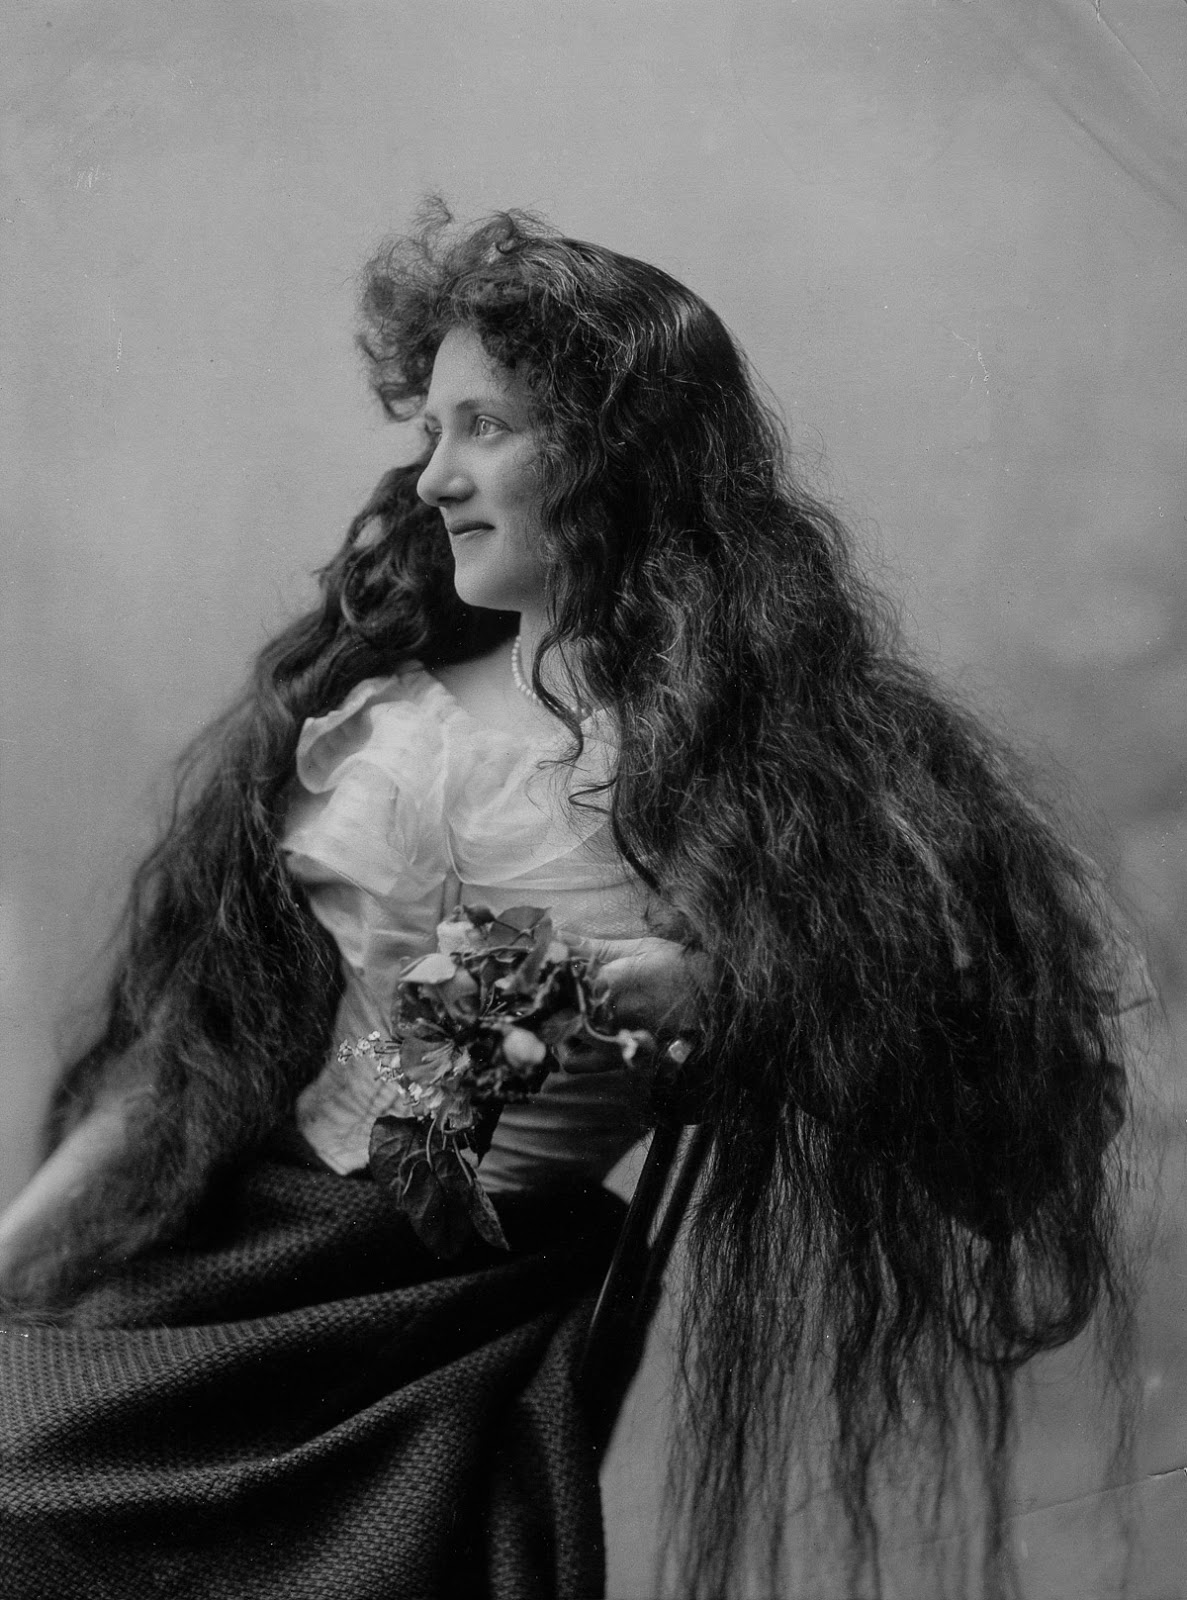 Long Hair Victorian Style 14 Vintage Photos That Prove ...